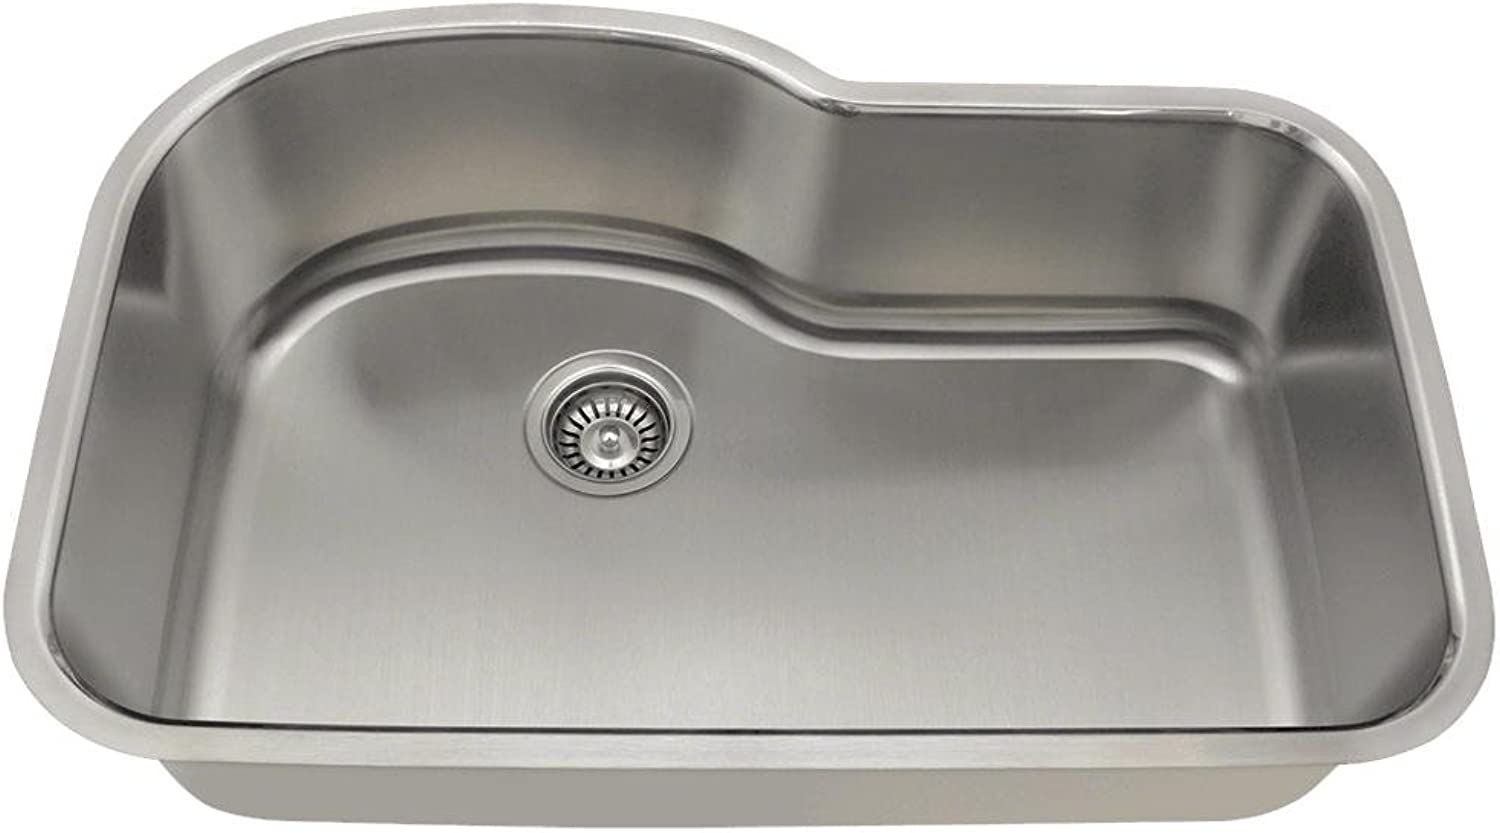 Mr Direct 346-18 Single Bowl Stainless Steel Sink